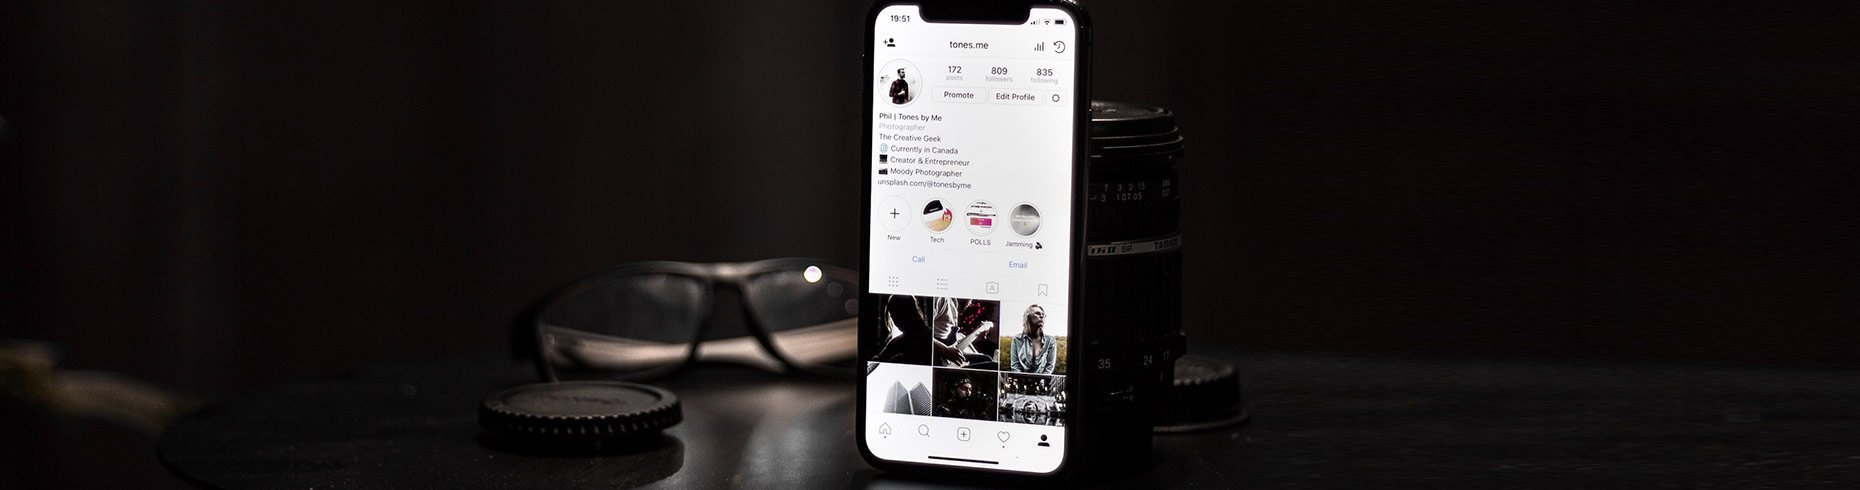 Instagram per fotografi Photo by Phil Desforges on Unsplash